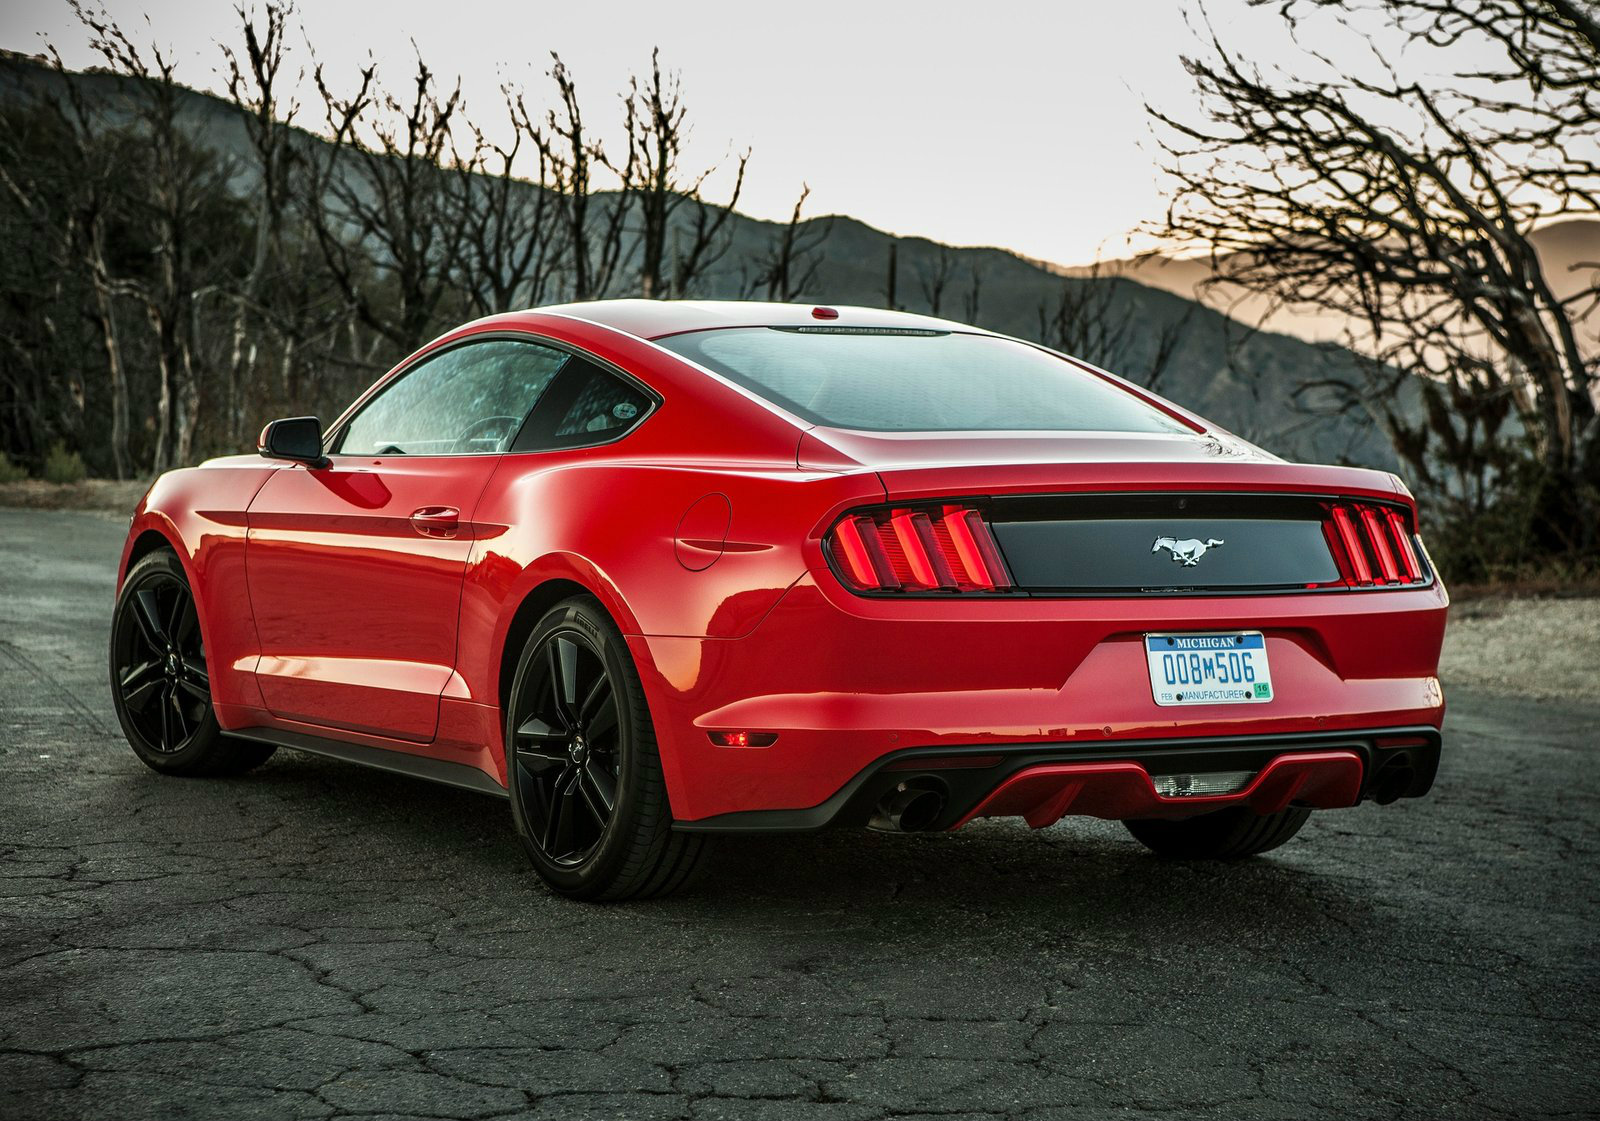 2015 ford mustang european pricing announced 2 3 liter. Black Bedroom Furniture Sets. Home Design Ideas